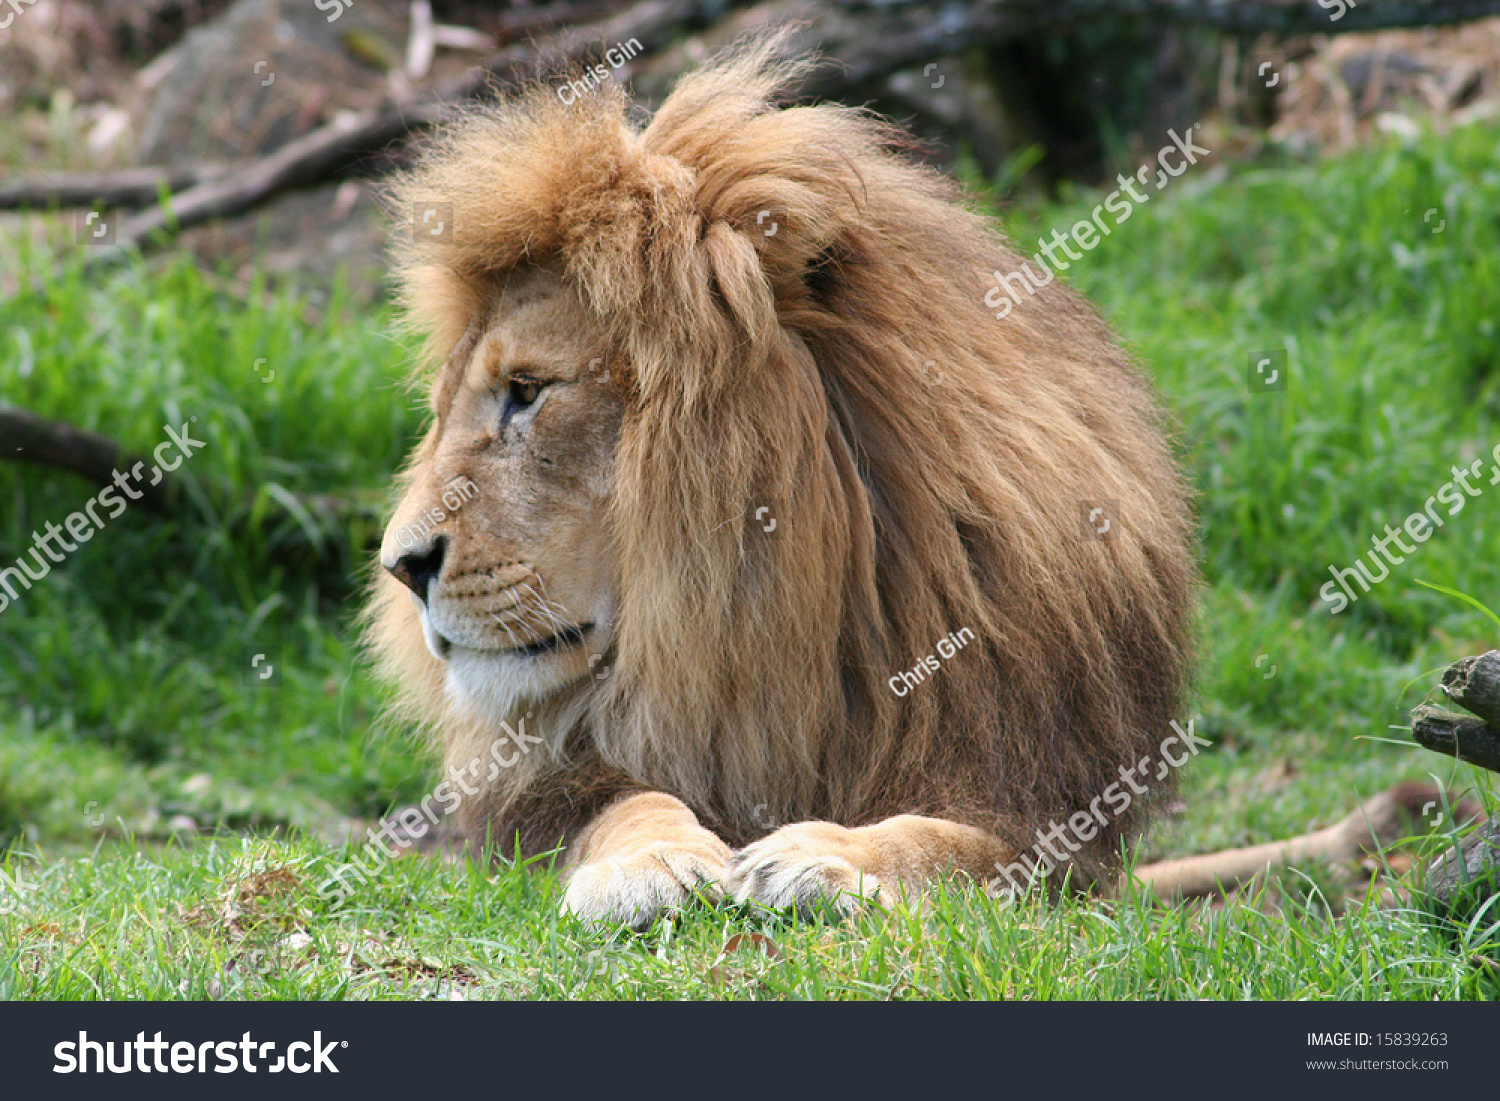 Lion Side View Stock Photo 15839263 - Shutterstock